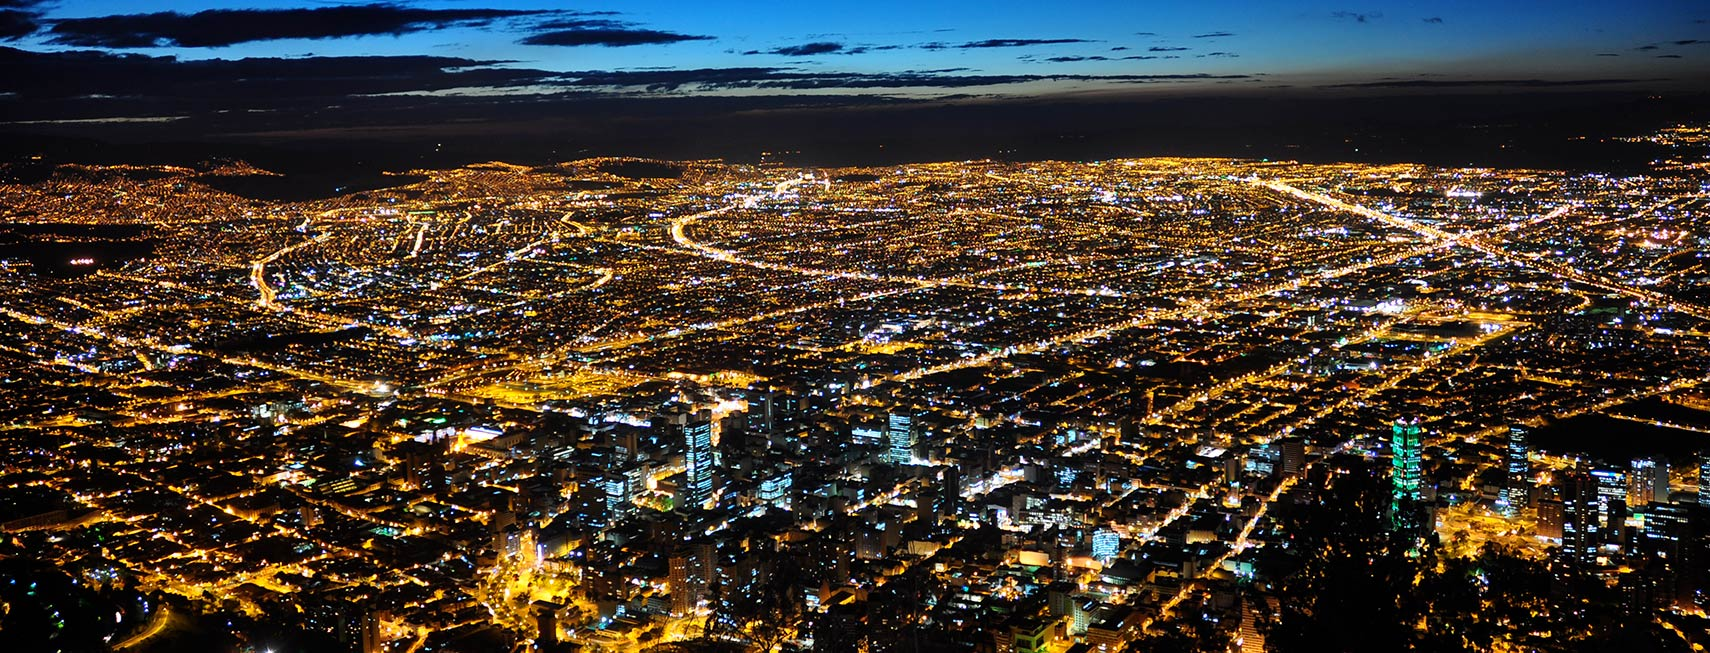 google map of the city of bogotá bogota colombia nations online